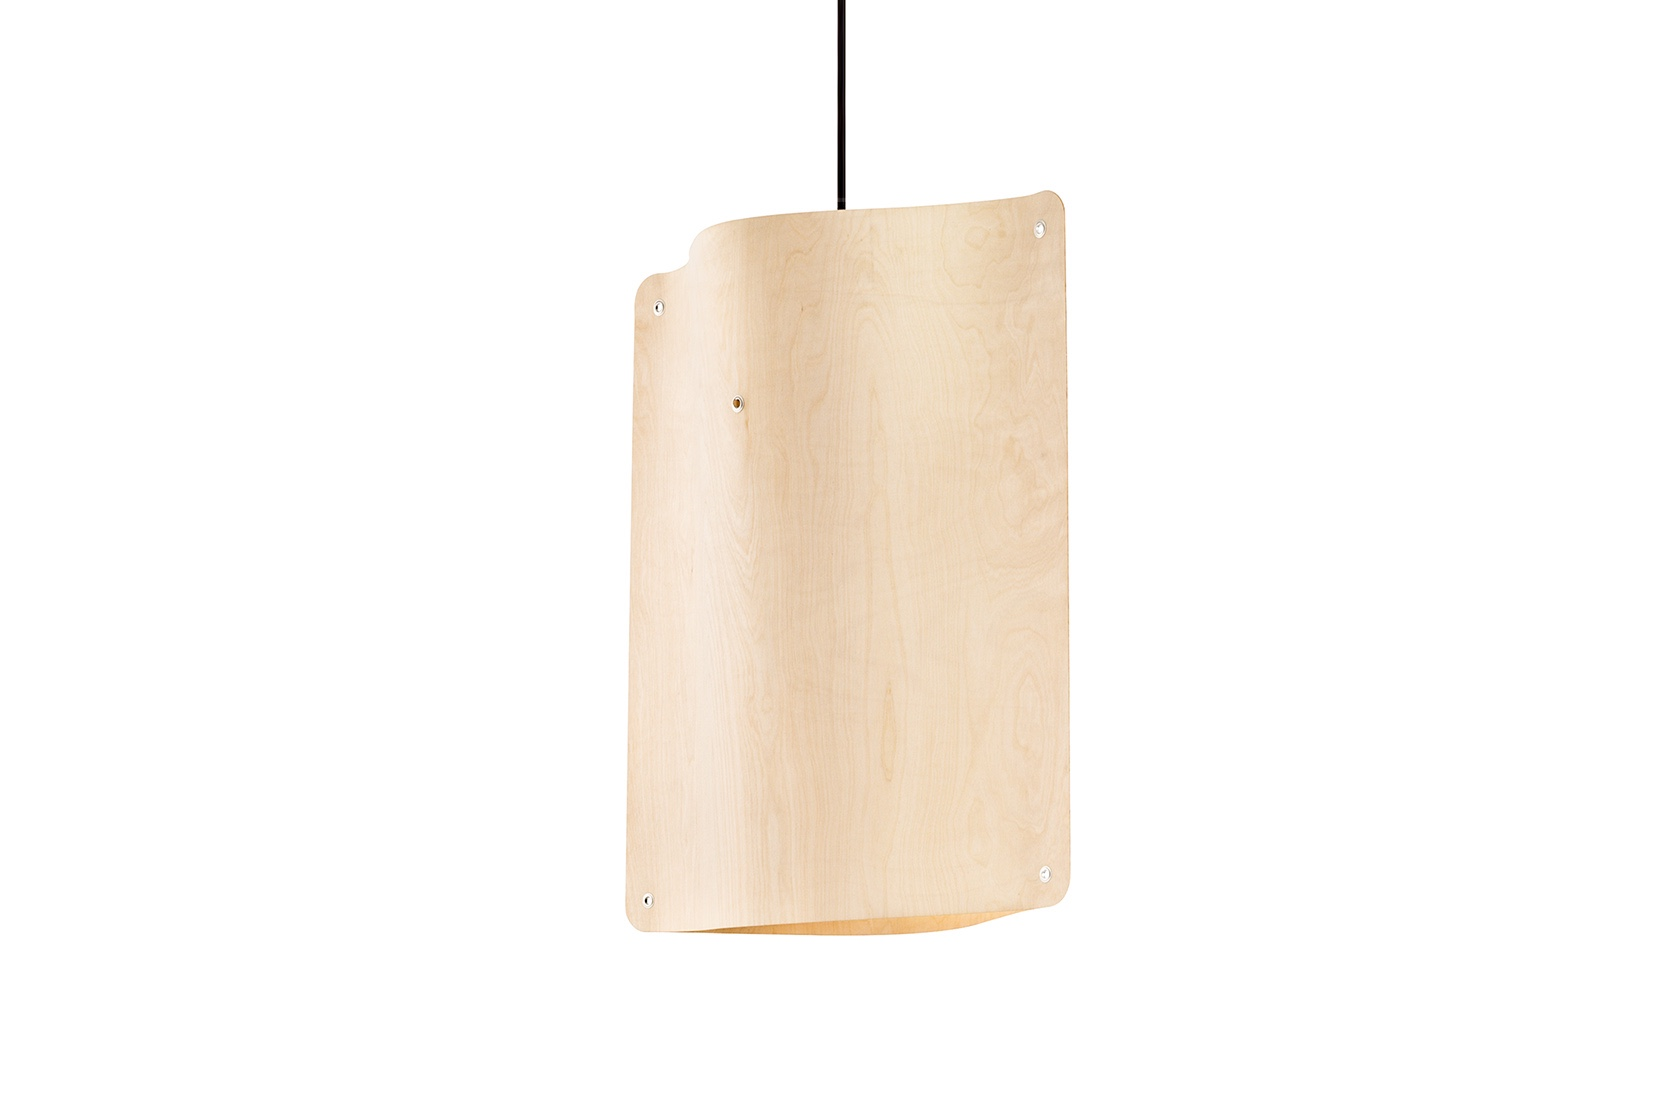 Finomlights®_Square_pendant_small_SPS_angle_photo_Pekka Kiirala_Vesmanen